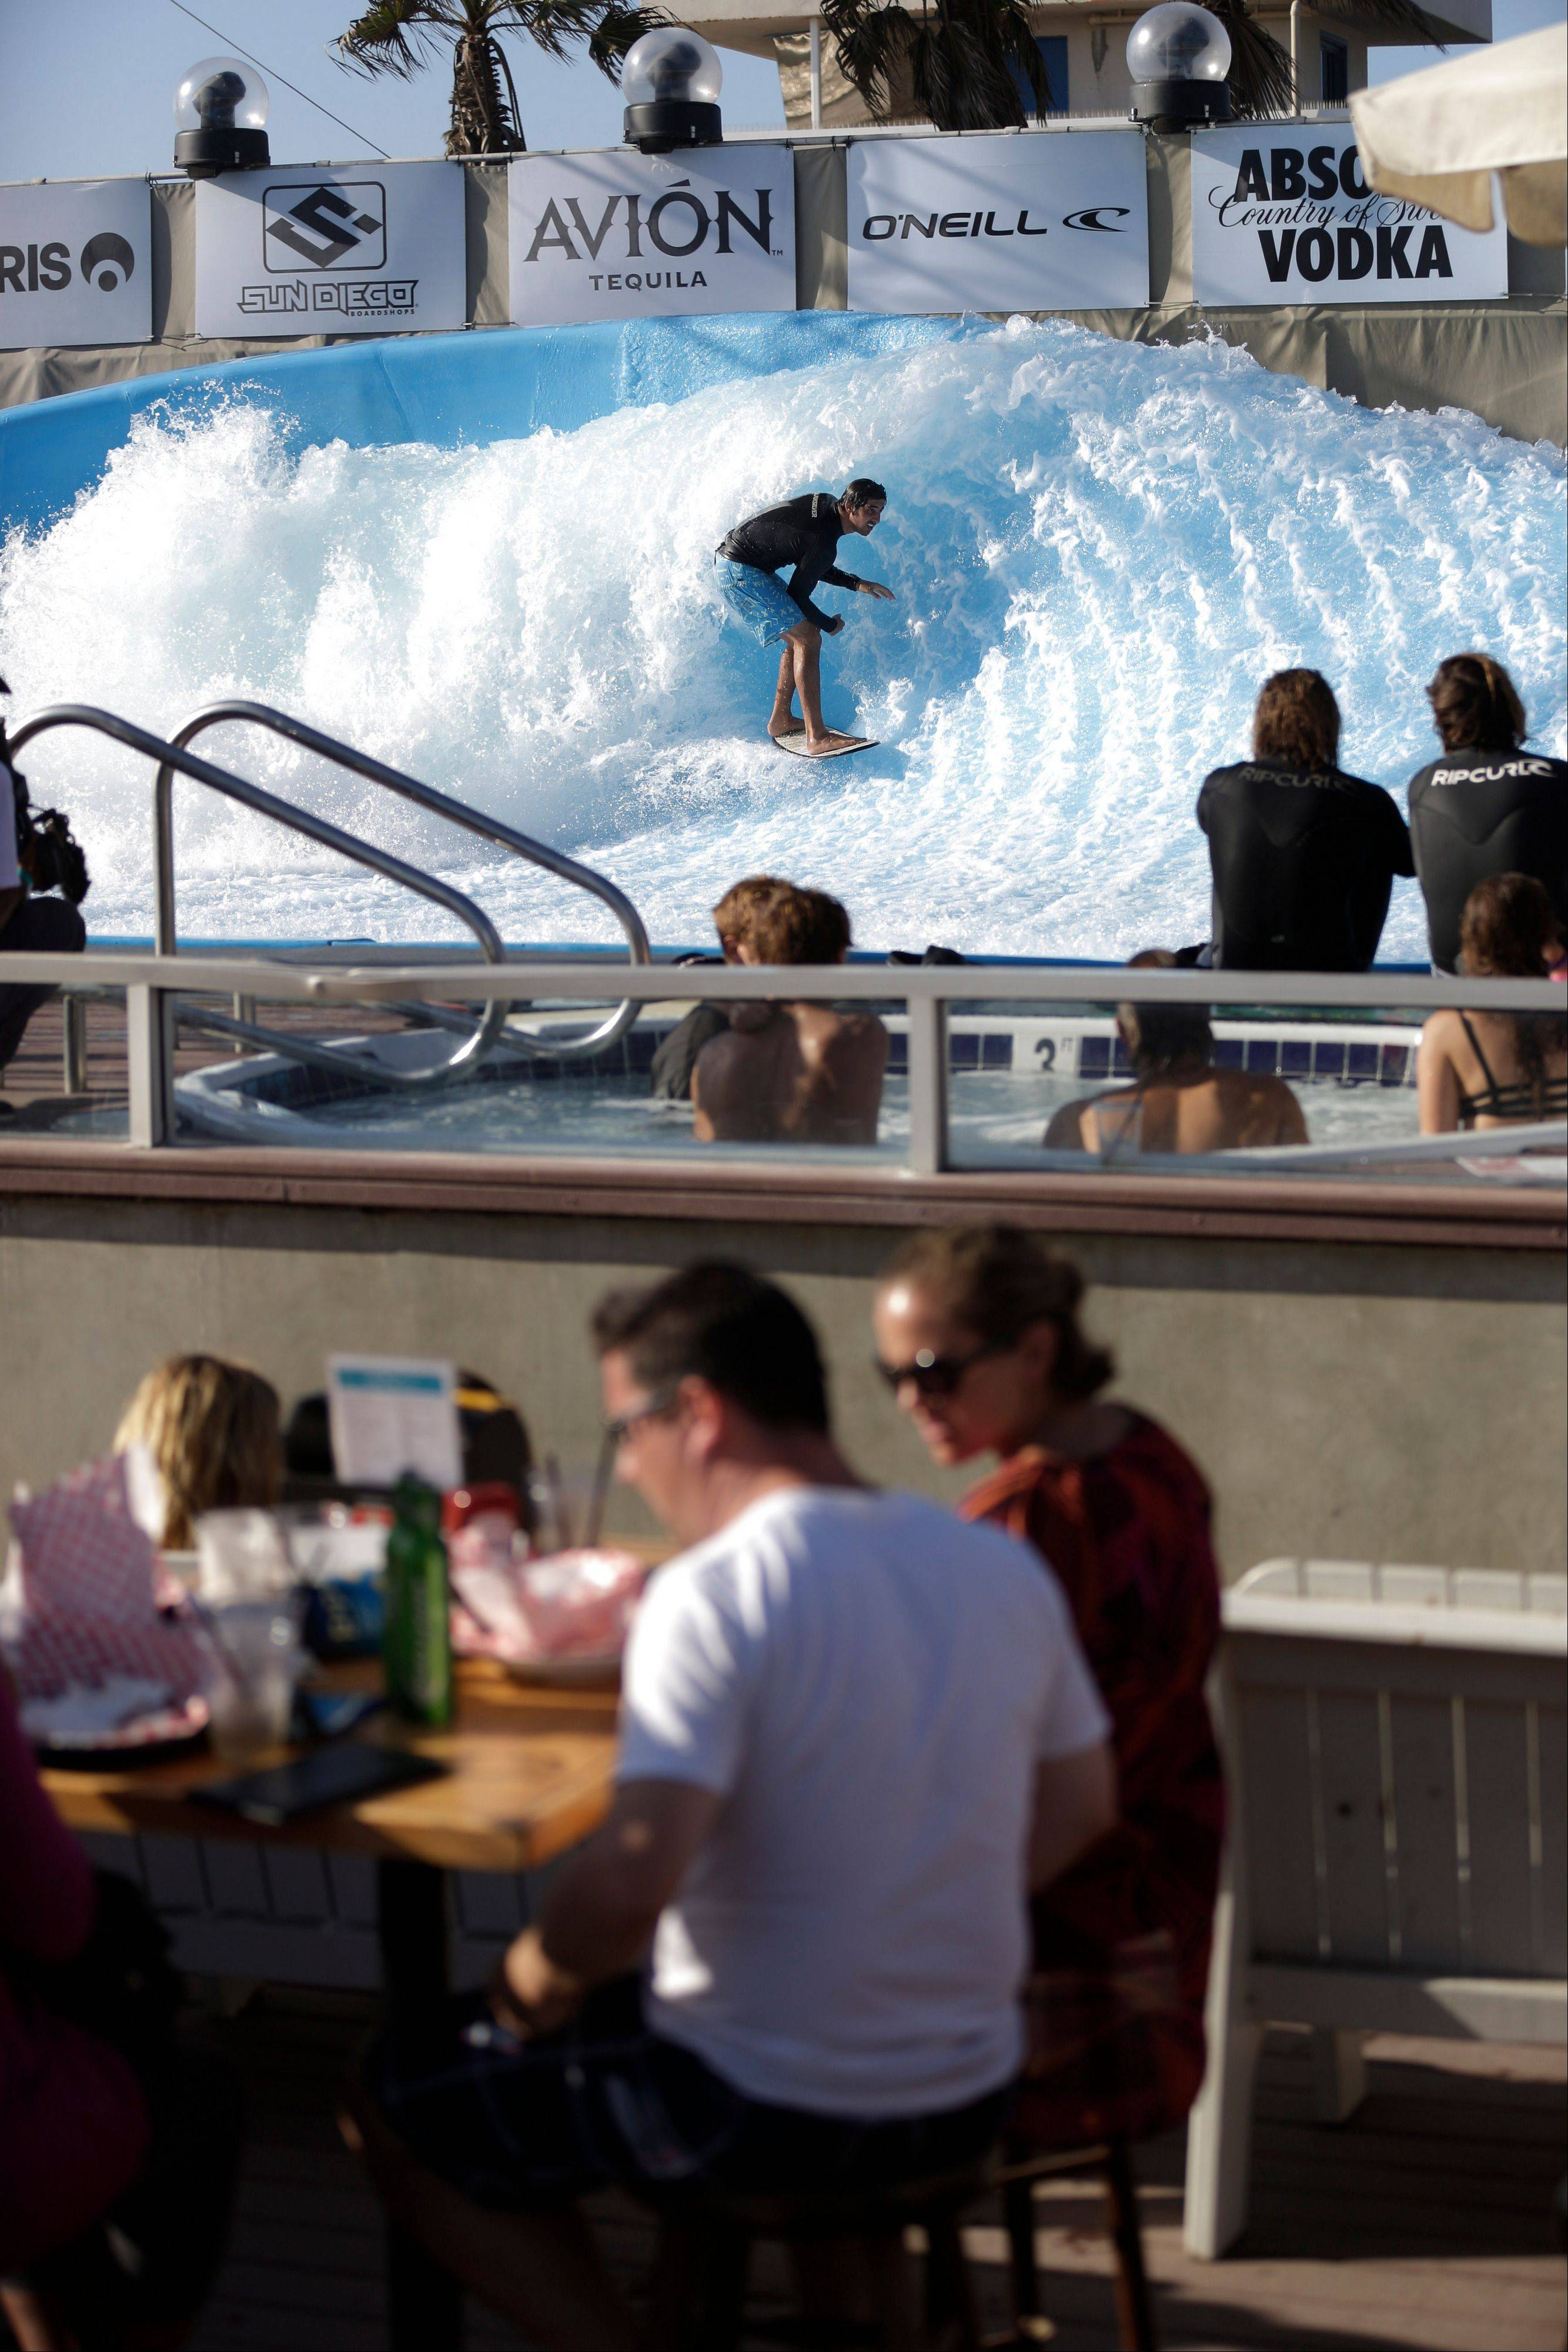 A surfer rides the machine-made wave at Wavehouse San Diego. Surf parks � massive pools with repeating, artificial waves � are the latest buzzword in the surf community. Momentum around surf parks has been growing since the 1960s, but fewer than a dozen serious parks currently exist in locations from Florida to Malaysia.